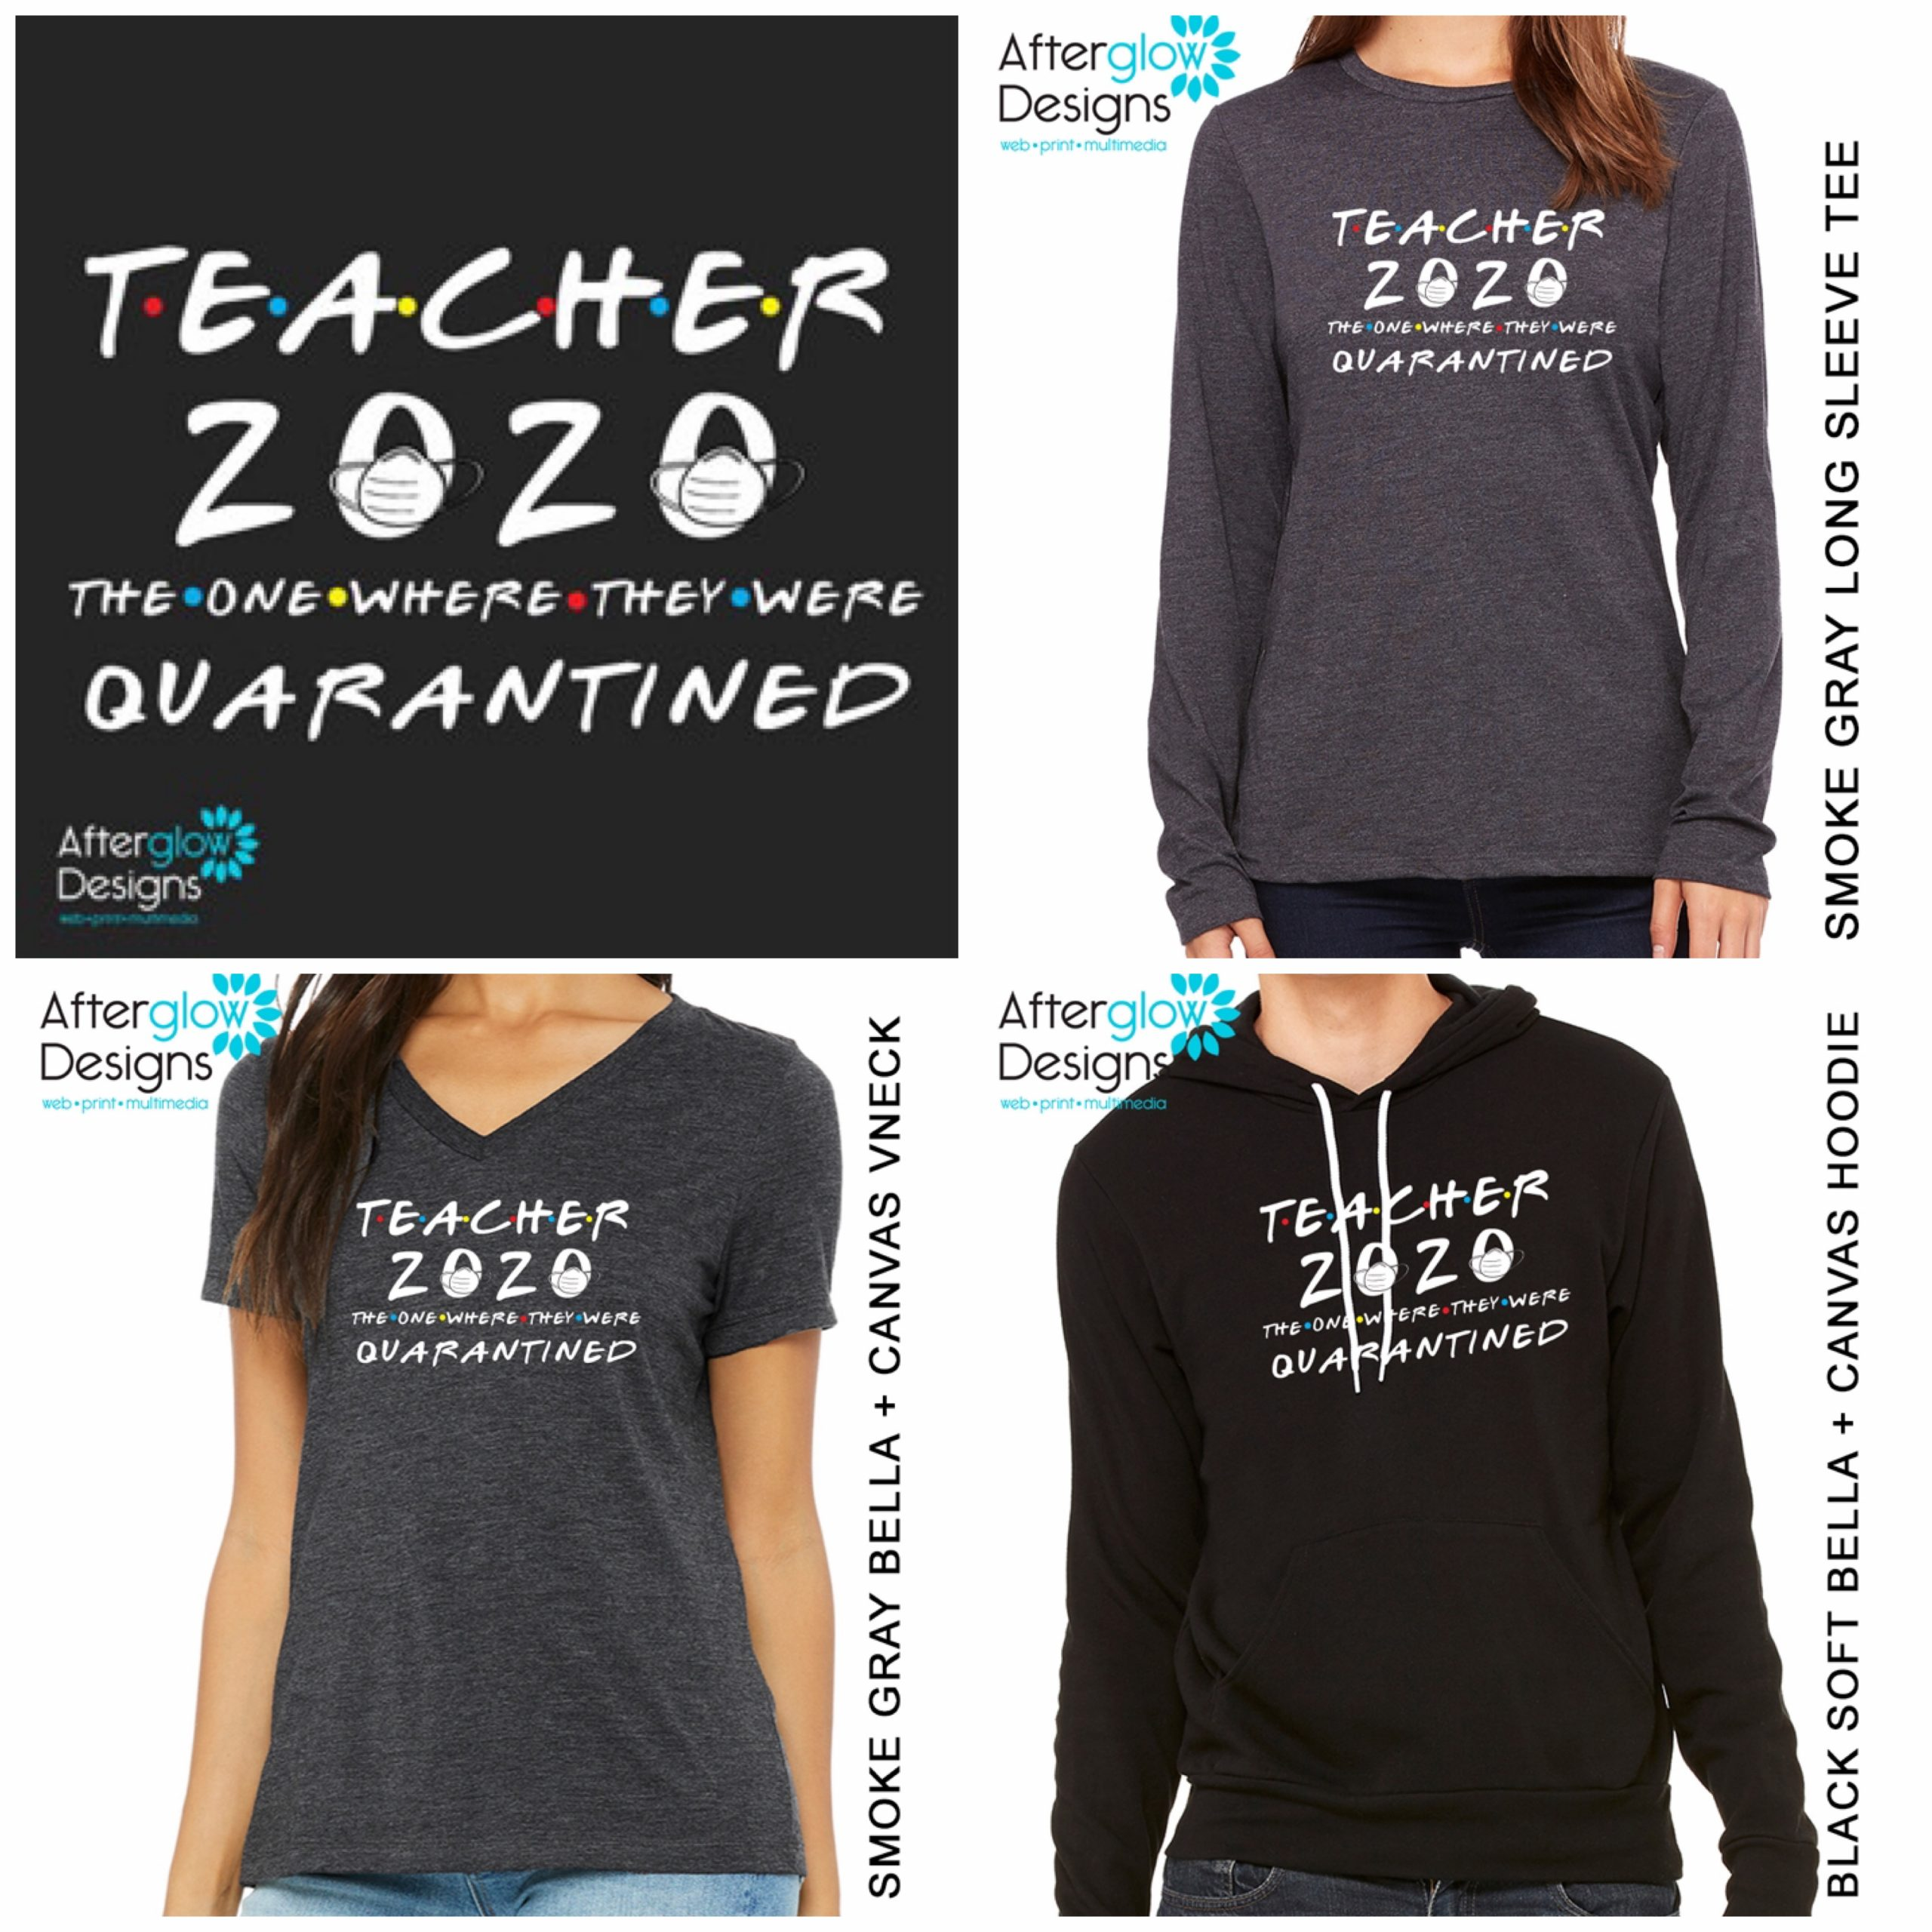 """Teacher 2020 - The One Where They Were Quarantined"" Tops"